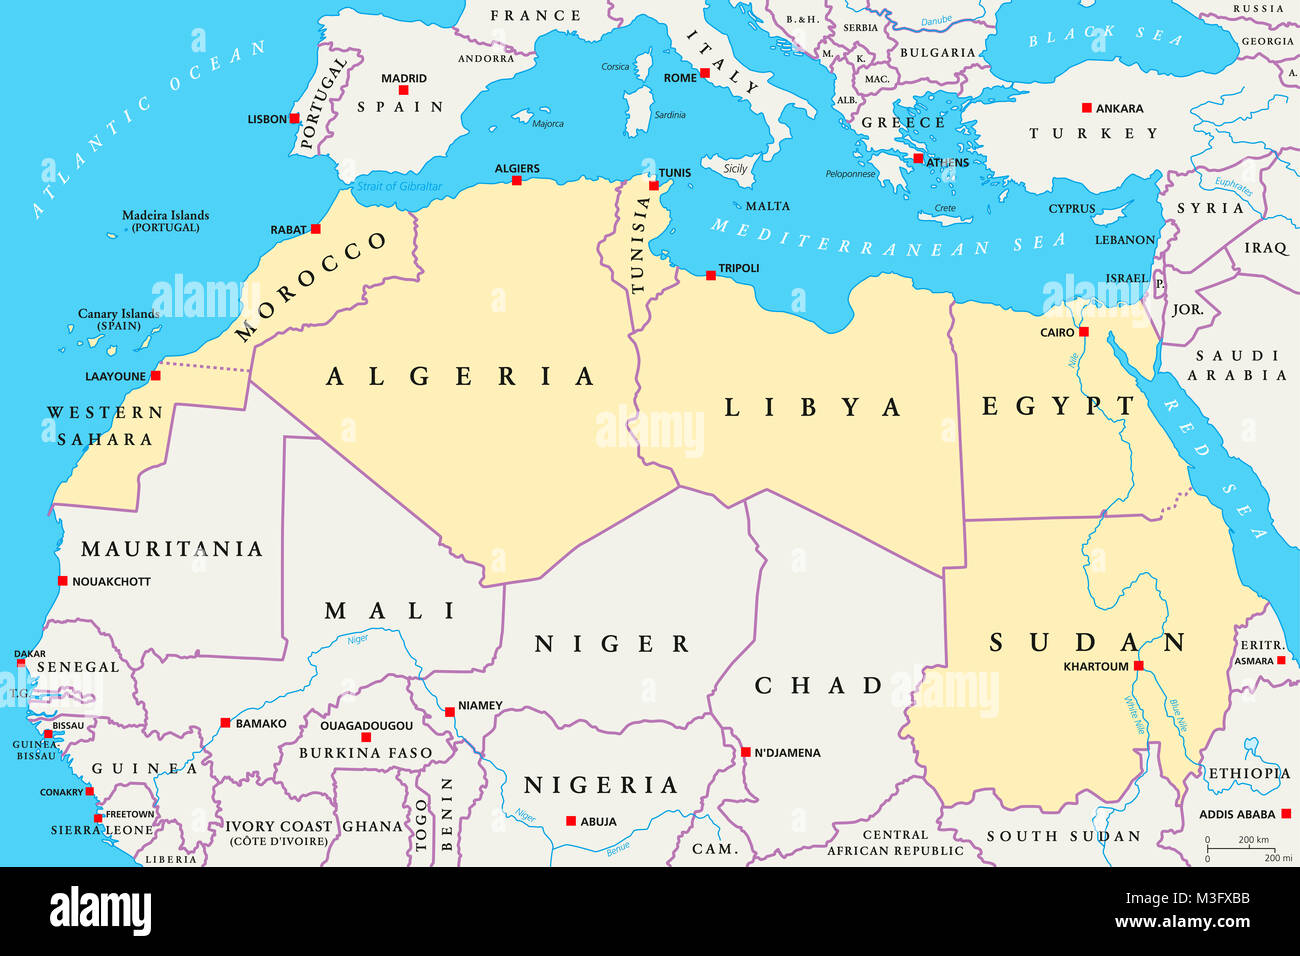 North Africa region, political map. Yellow colored area ...